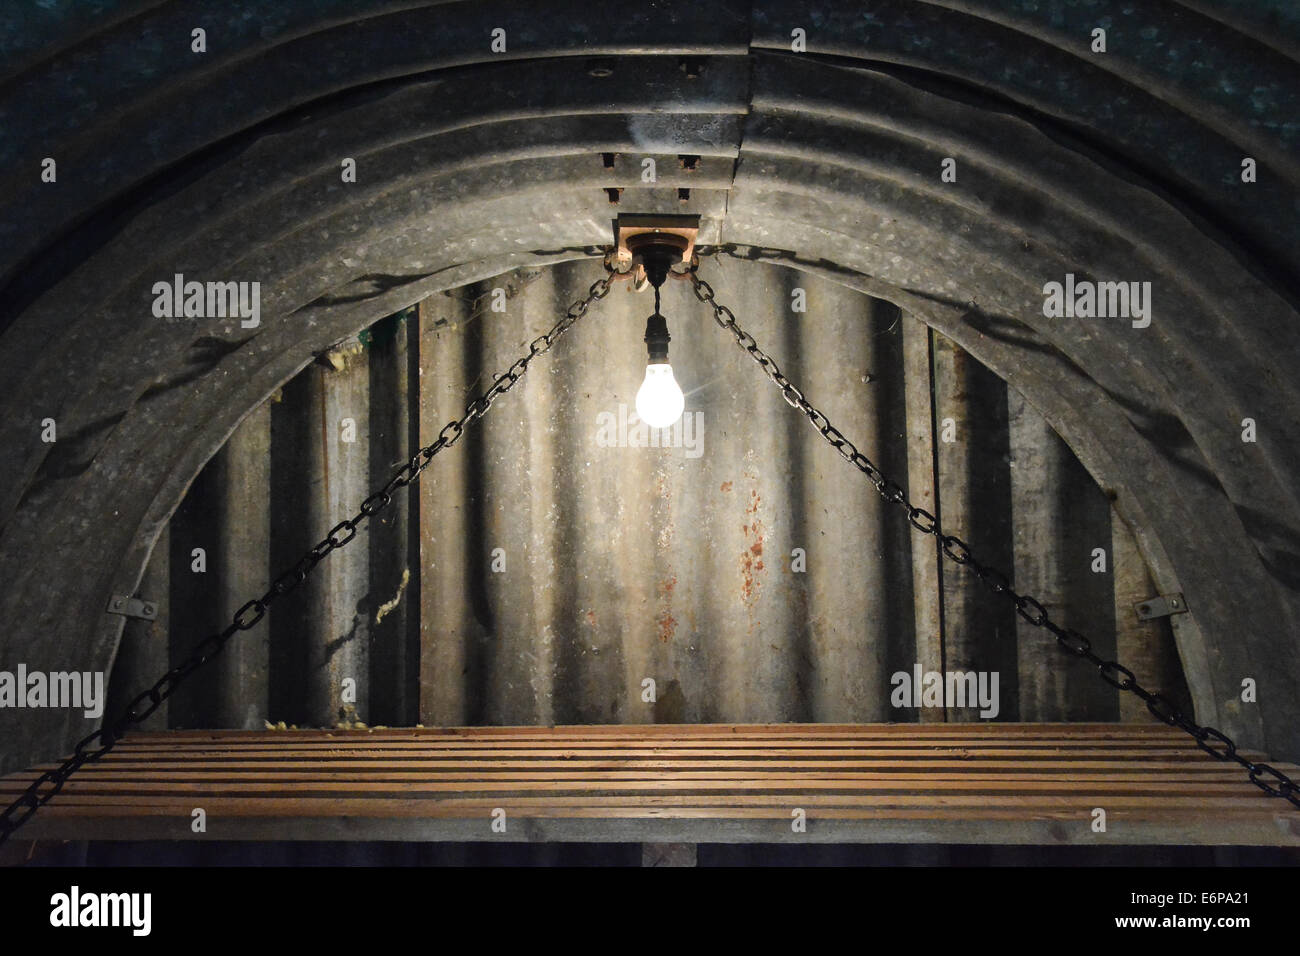 Bare lightbulb over a wooden bunk inside a World War II Anderson air raid shelter - Stock Image